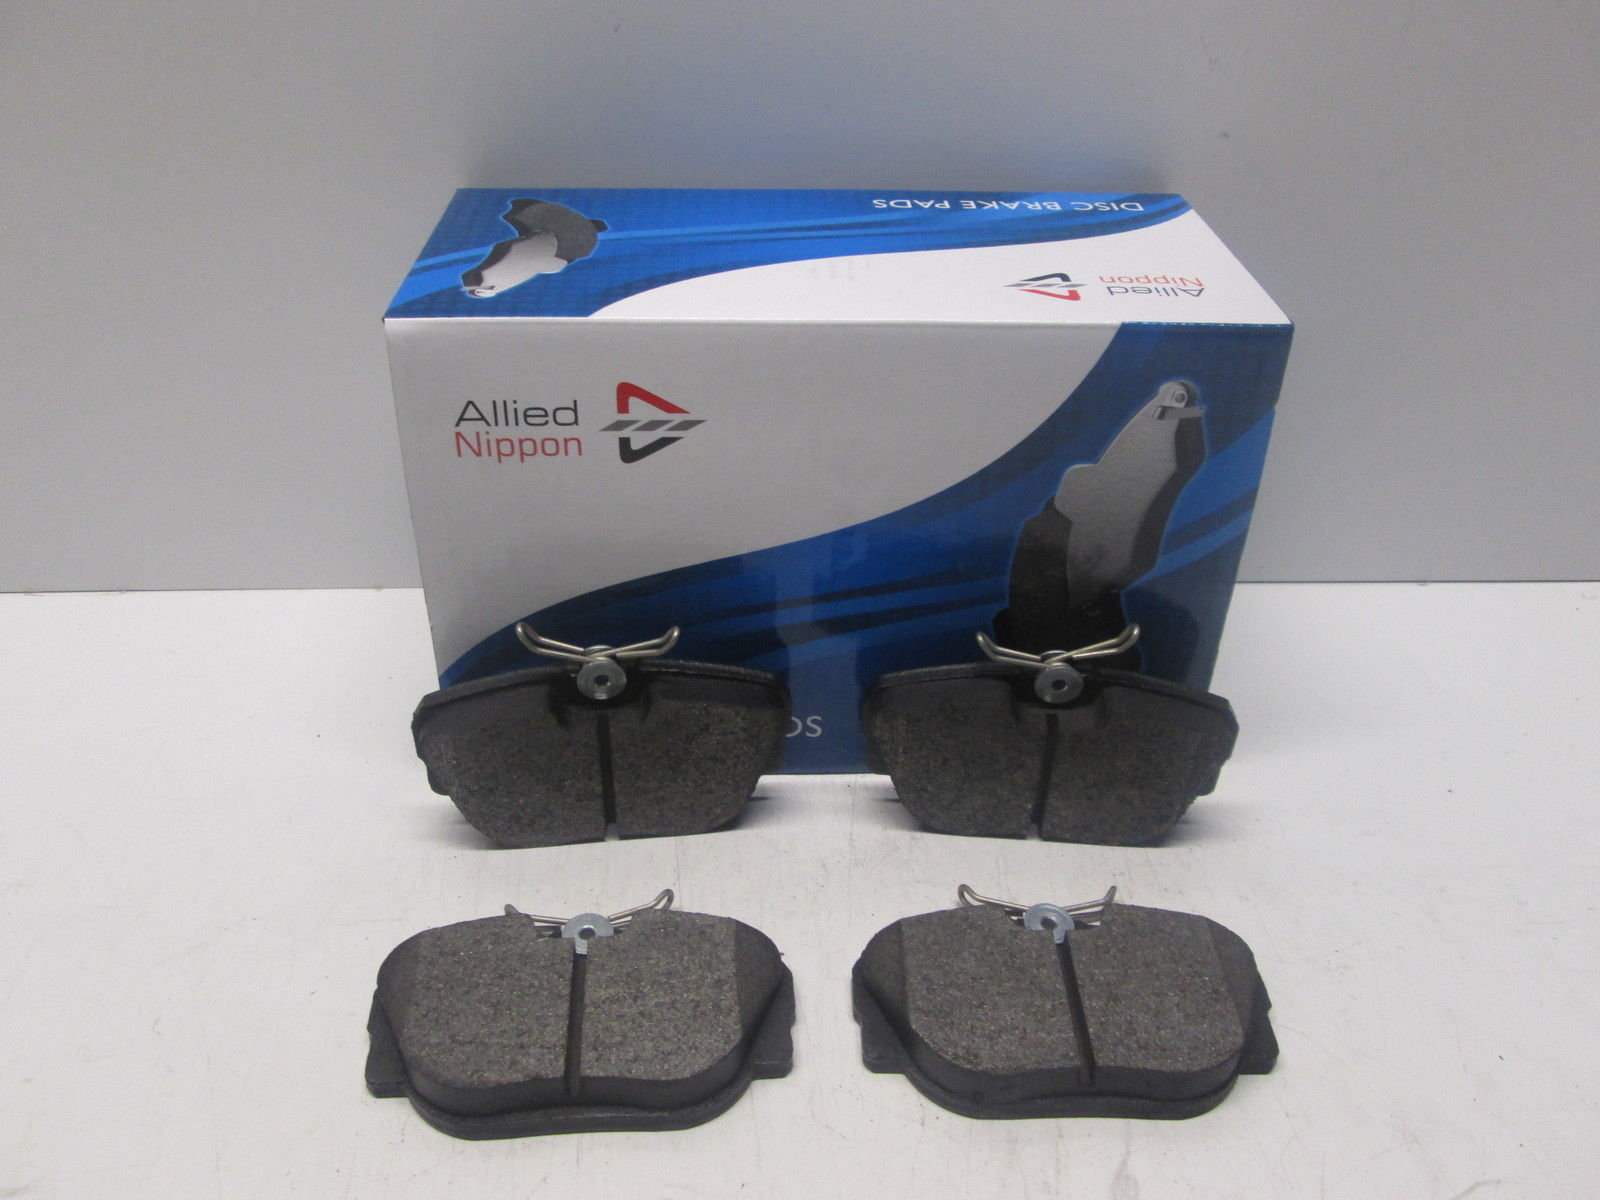 Land Rover Discovery MK2 2.5 Td5 Genuine Allied Nippon Rear Brake Pads Set